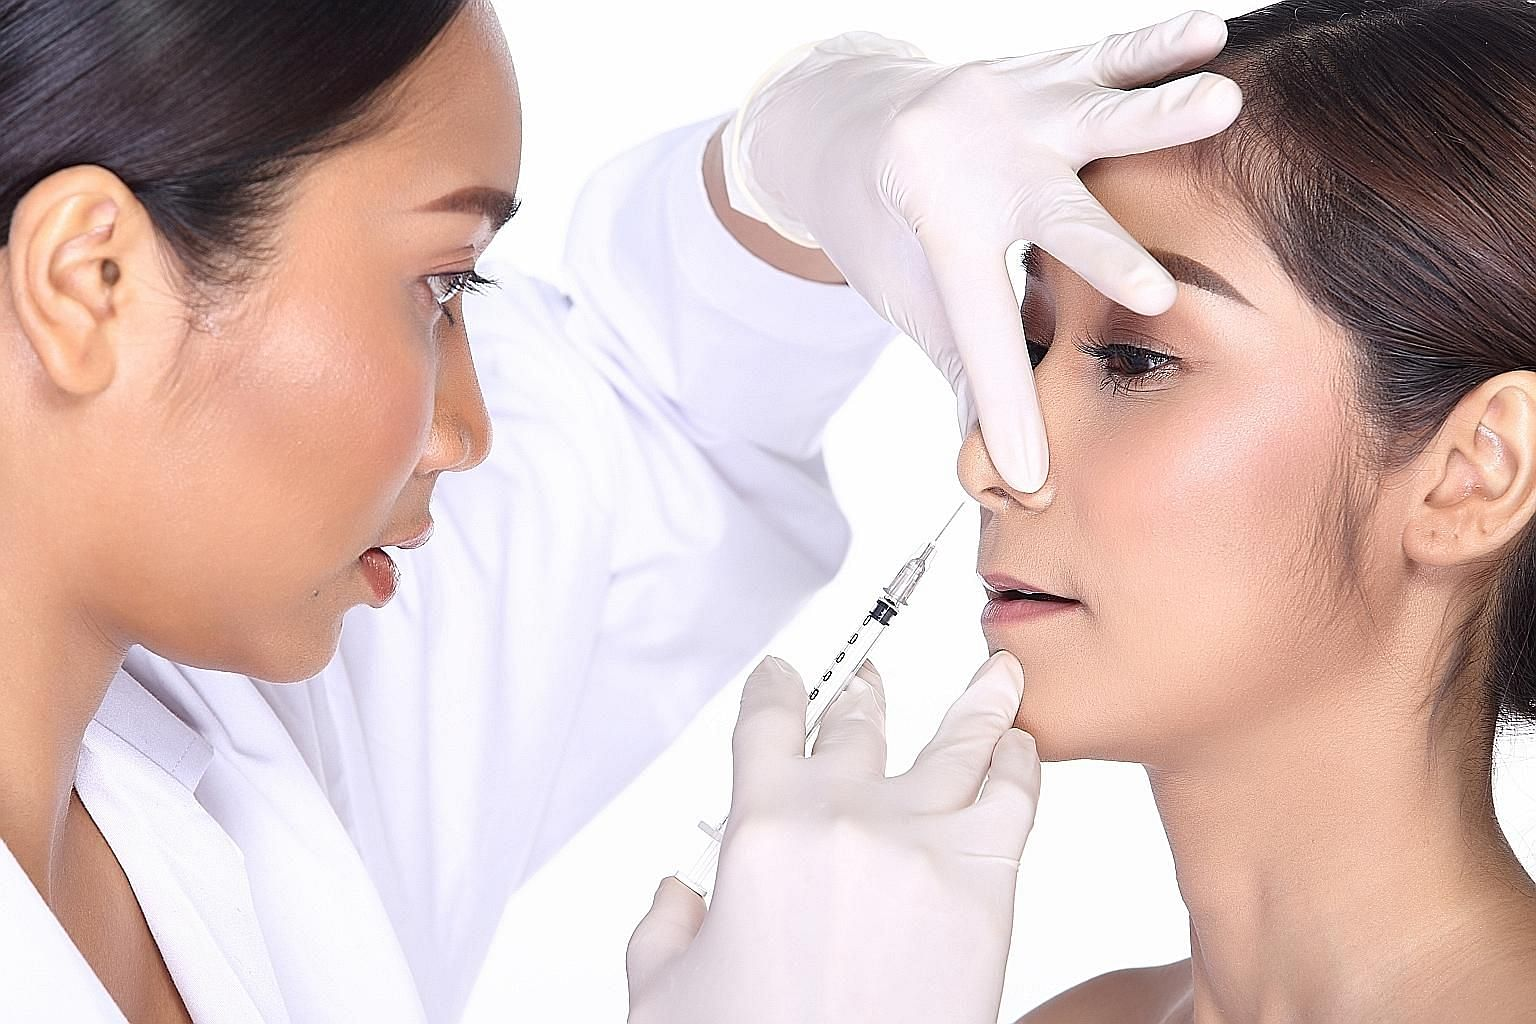 An excessive amount or the incorrect placement of botulinum toxin can lead to facial asymmetry, an unnatural facial expression, drooping eyelids or an uneven smile temporarily.